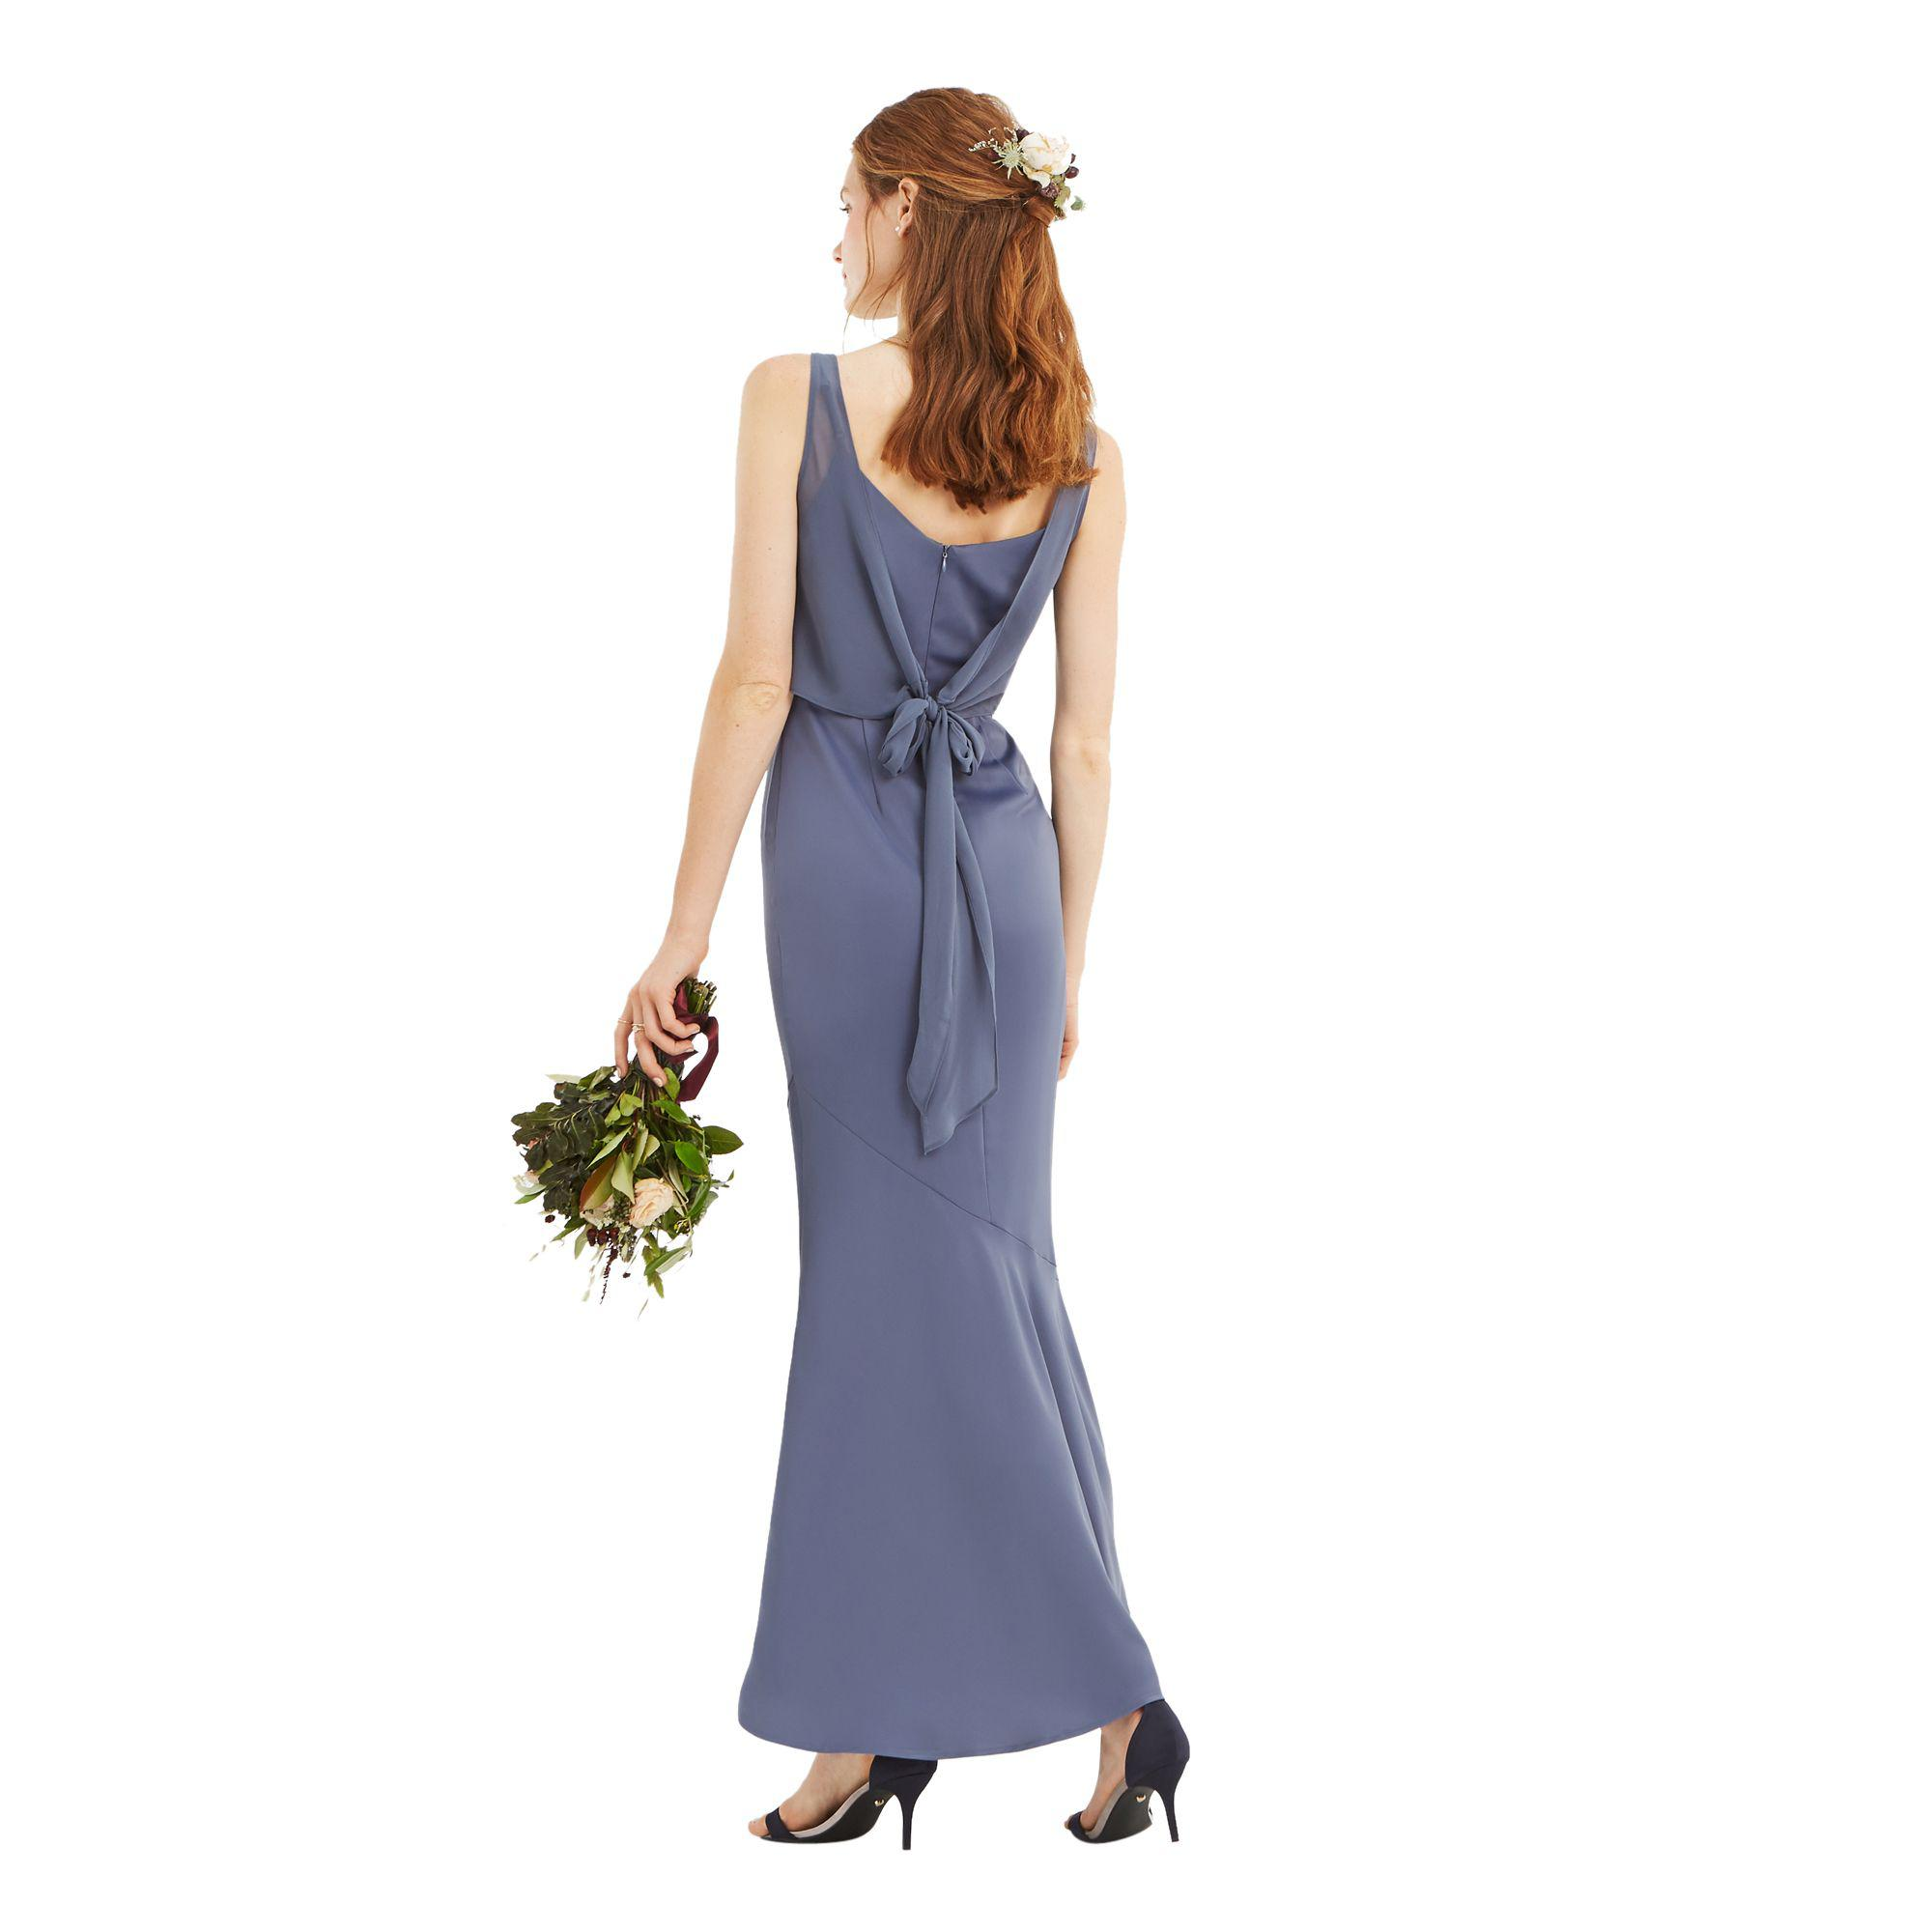 3903566901 Oasis Mid Grey 'emily' Slinky Bow Back Maxi Dress in Gray - Save 20 ...